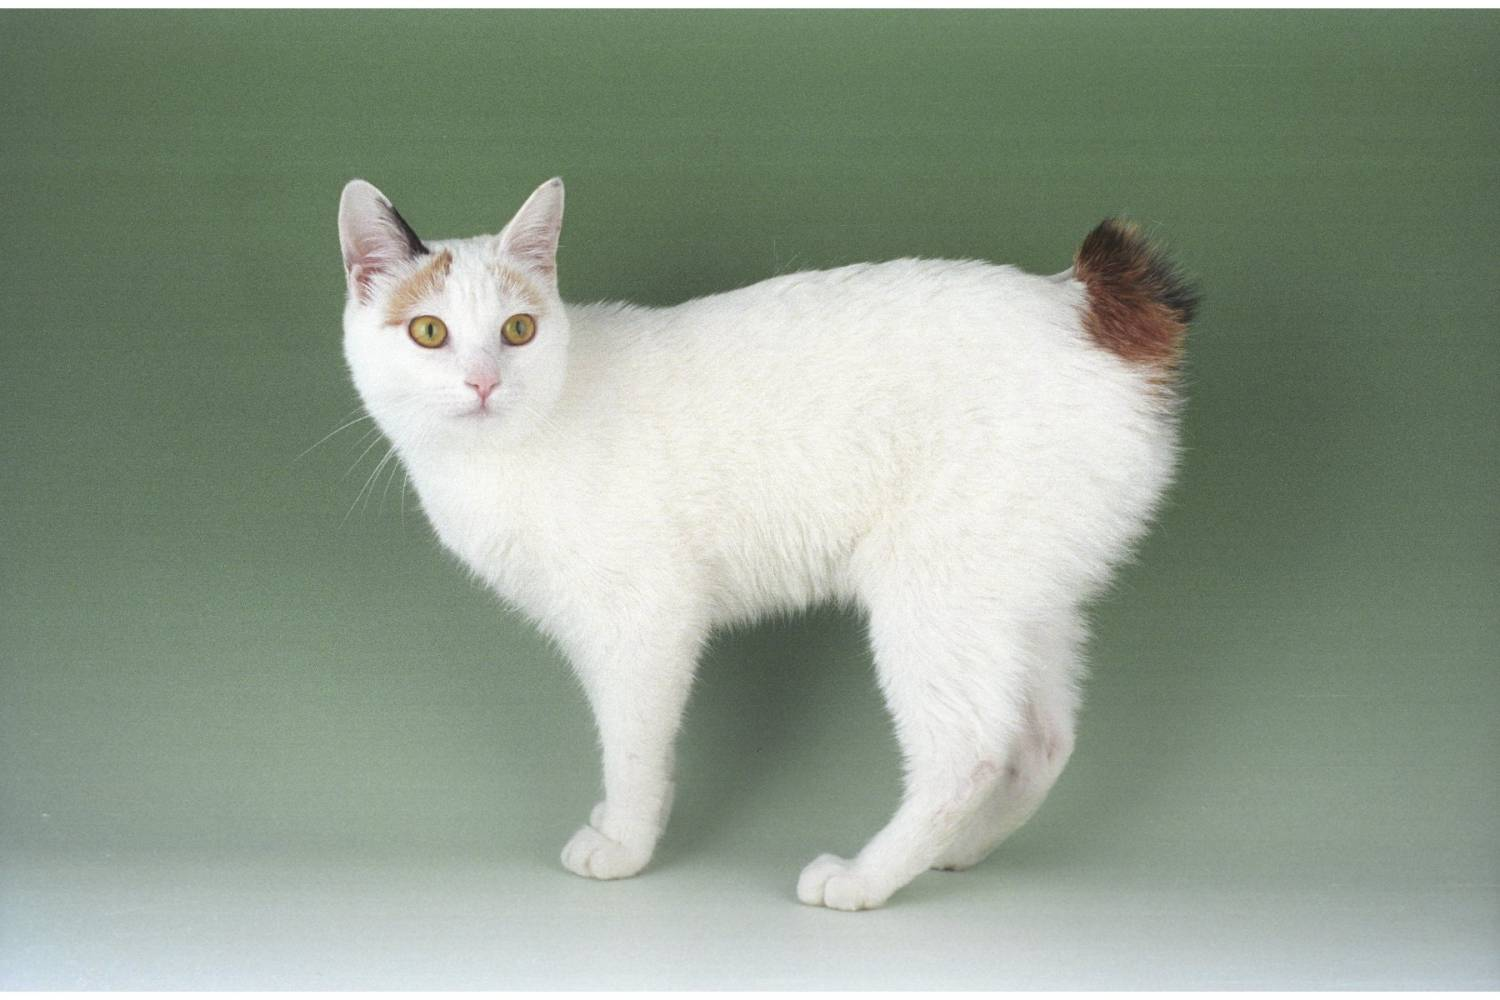 Cat breeds with pictures listing 100 Favorite Cats - Writers Free Reference